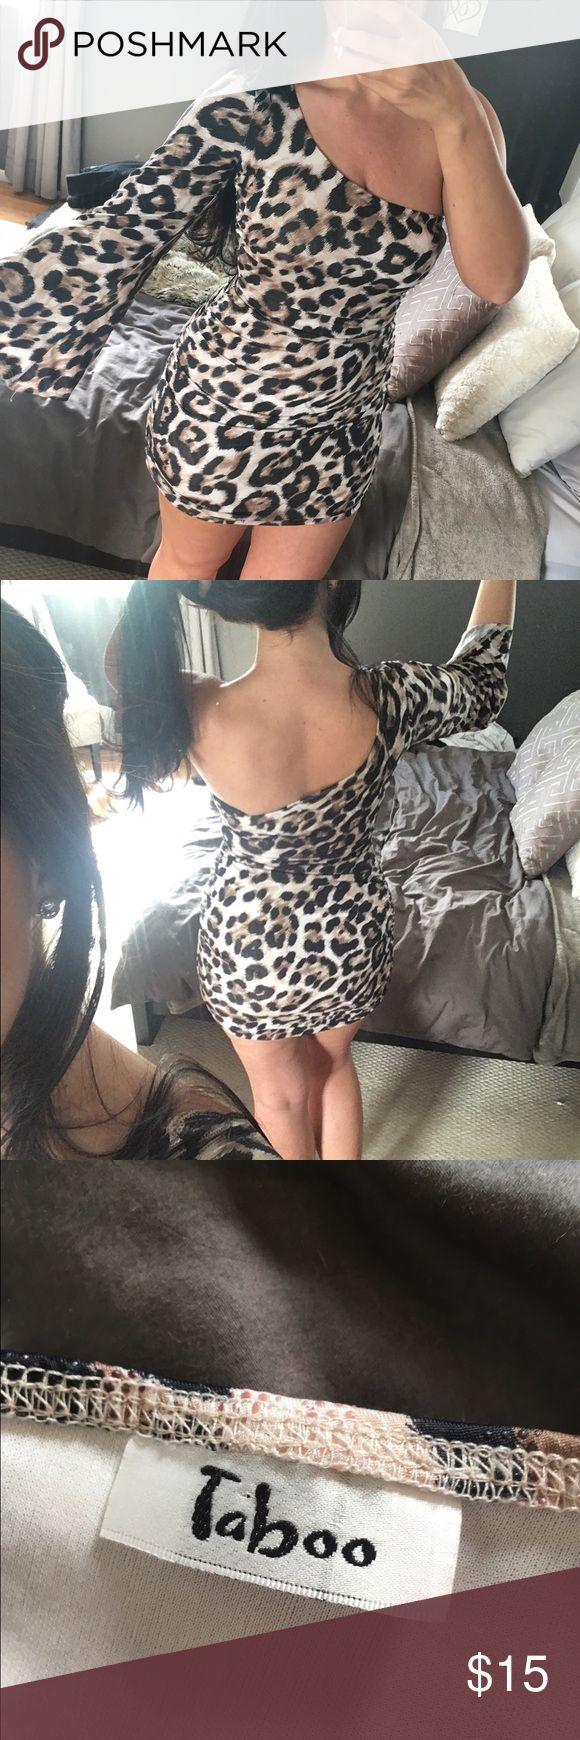 One shoulder leopard/cheetah print mini dress Brand new without tags. Super cute animal print mini dress with ruched sides and one sleeve. Bundle to save or make an offer! Taboo Dresses Mini